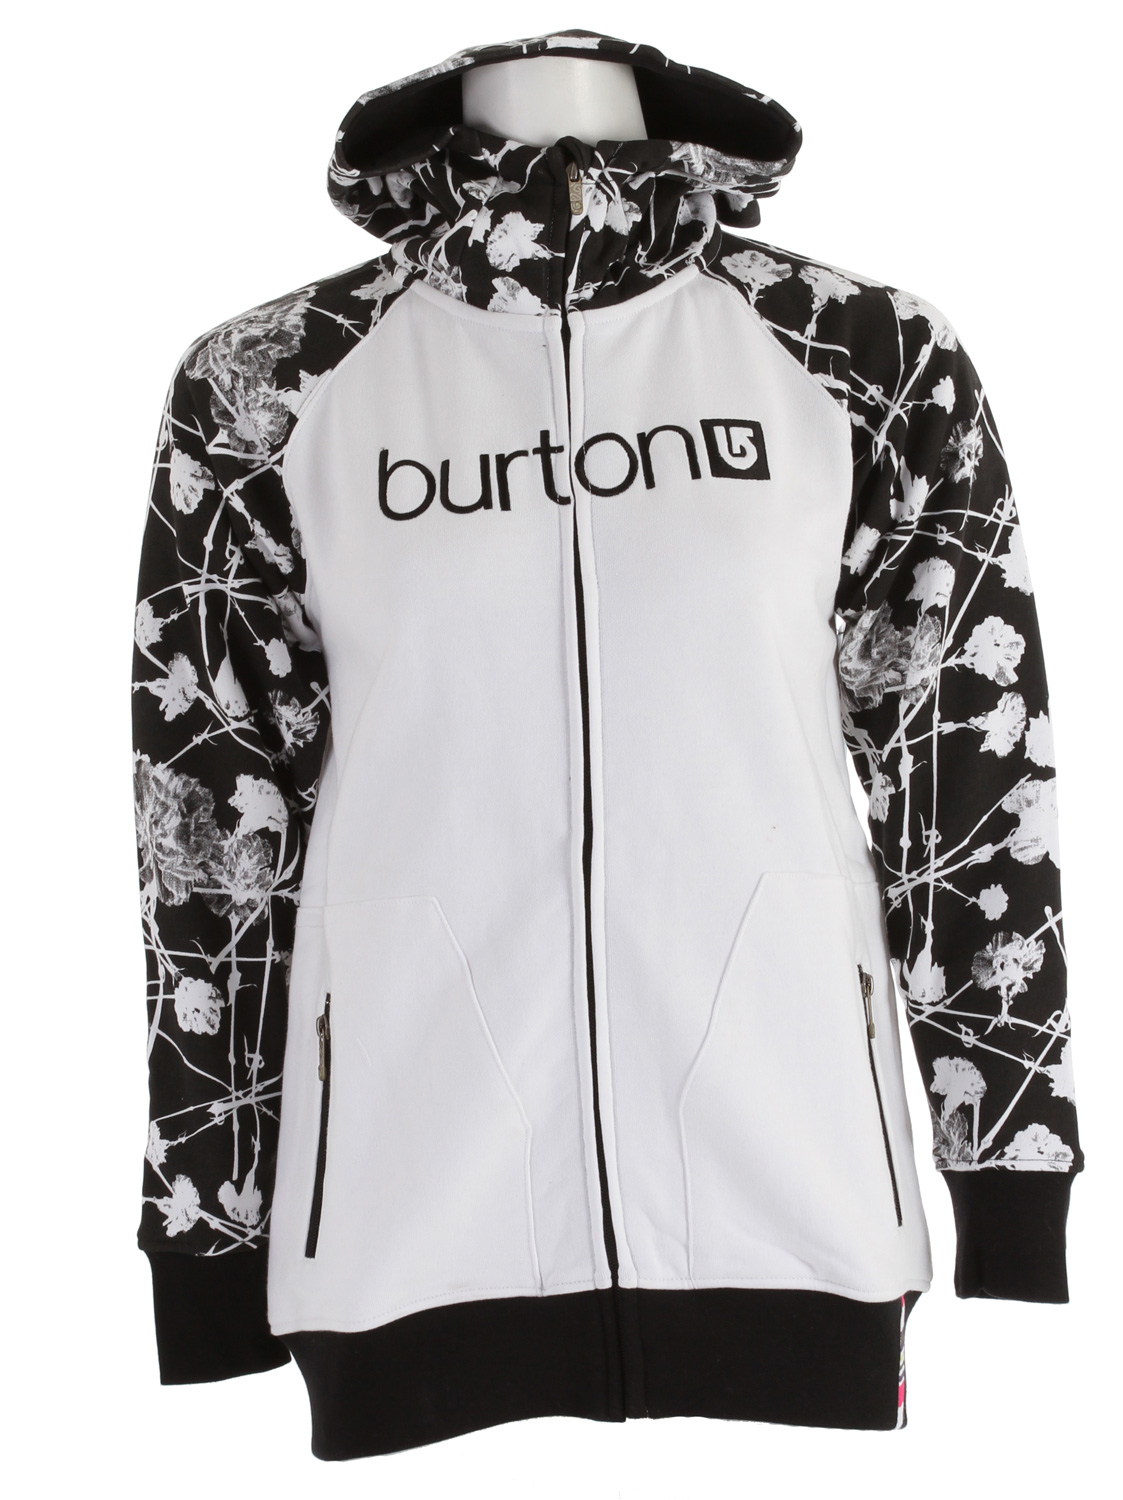 Snowboard If you have been looking for that hoodie with style and comfort and won't cause you to break the bank when you buy it, then look no further because the Burton Premium Spencer Hoodie is exactly what you have been looking for. This hoodie is relaxed fit so you know it will keep you comfortable while just walking around to showing off your skills. The quality and price of the Burton Premium Spencer Hoodie makes it a must have for everybody.Key Features of the Burton Premium Spencer Hoodie: 100% Cotton Dual Front Pockets with Zipper Closure Hood with Mini Brim Metal Logo at Cuff and Custom Art and Embroidery Application on Each Colorway Fit: Boyfriend,Slightly Relaxed Fit Like Your Boyfriend's Fleece - $36.95